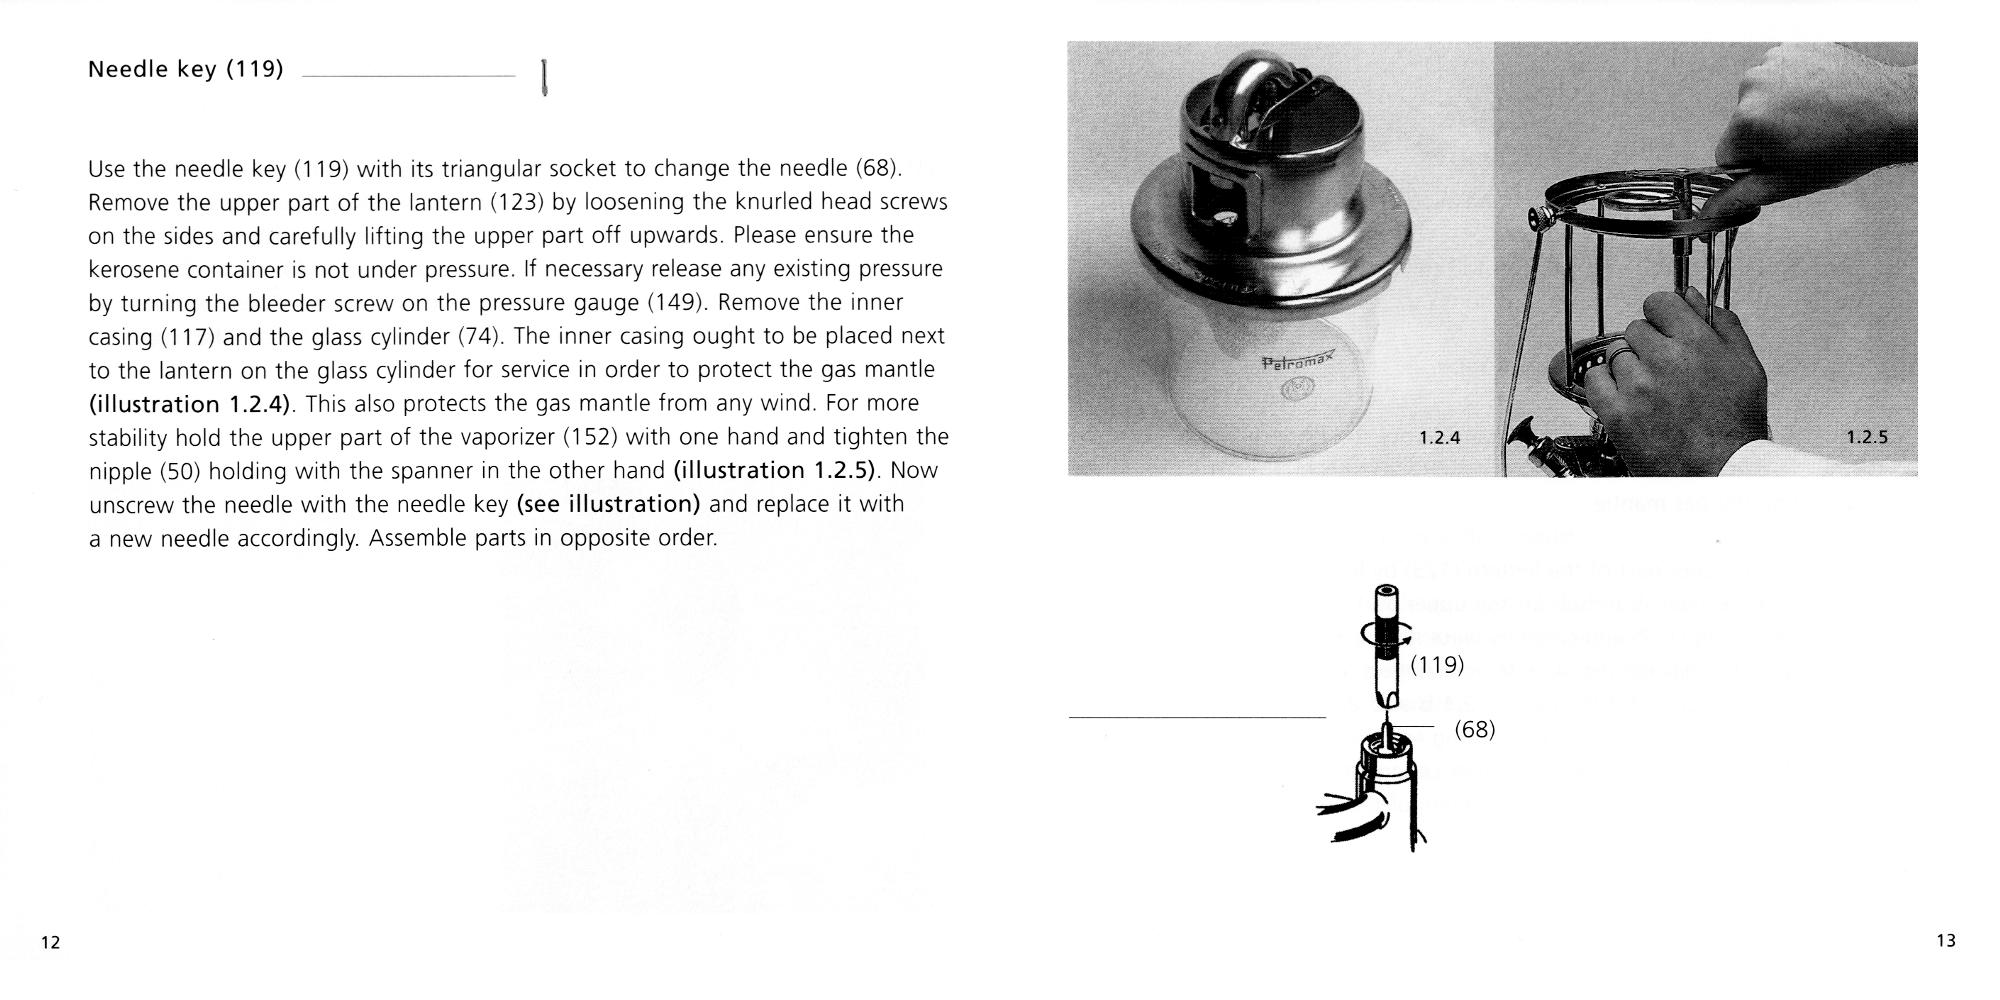 Petromax Instructions page 12 and 13